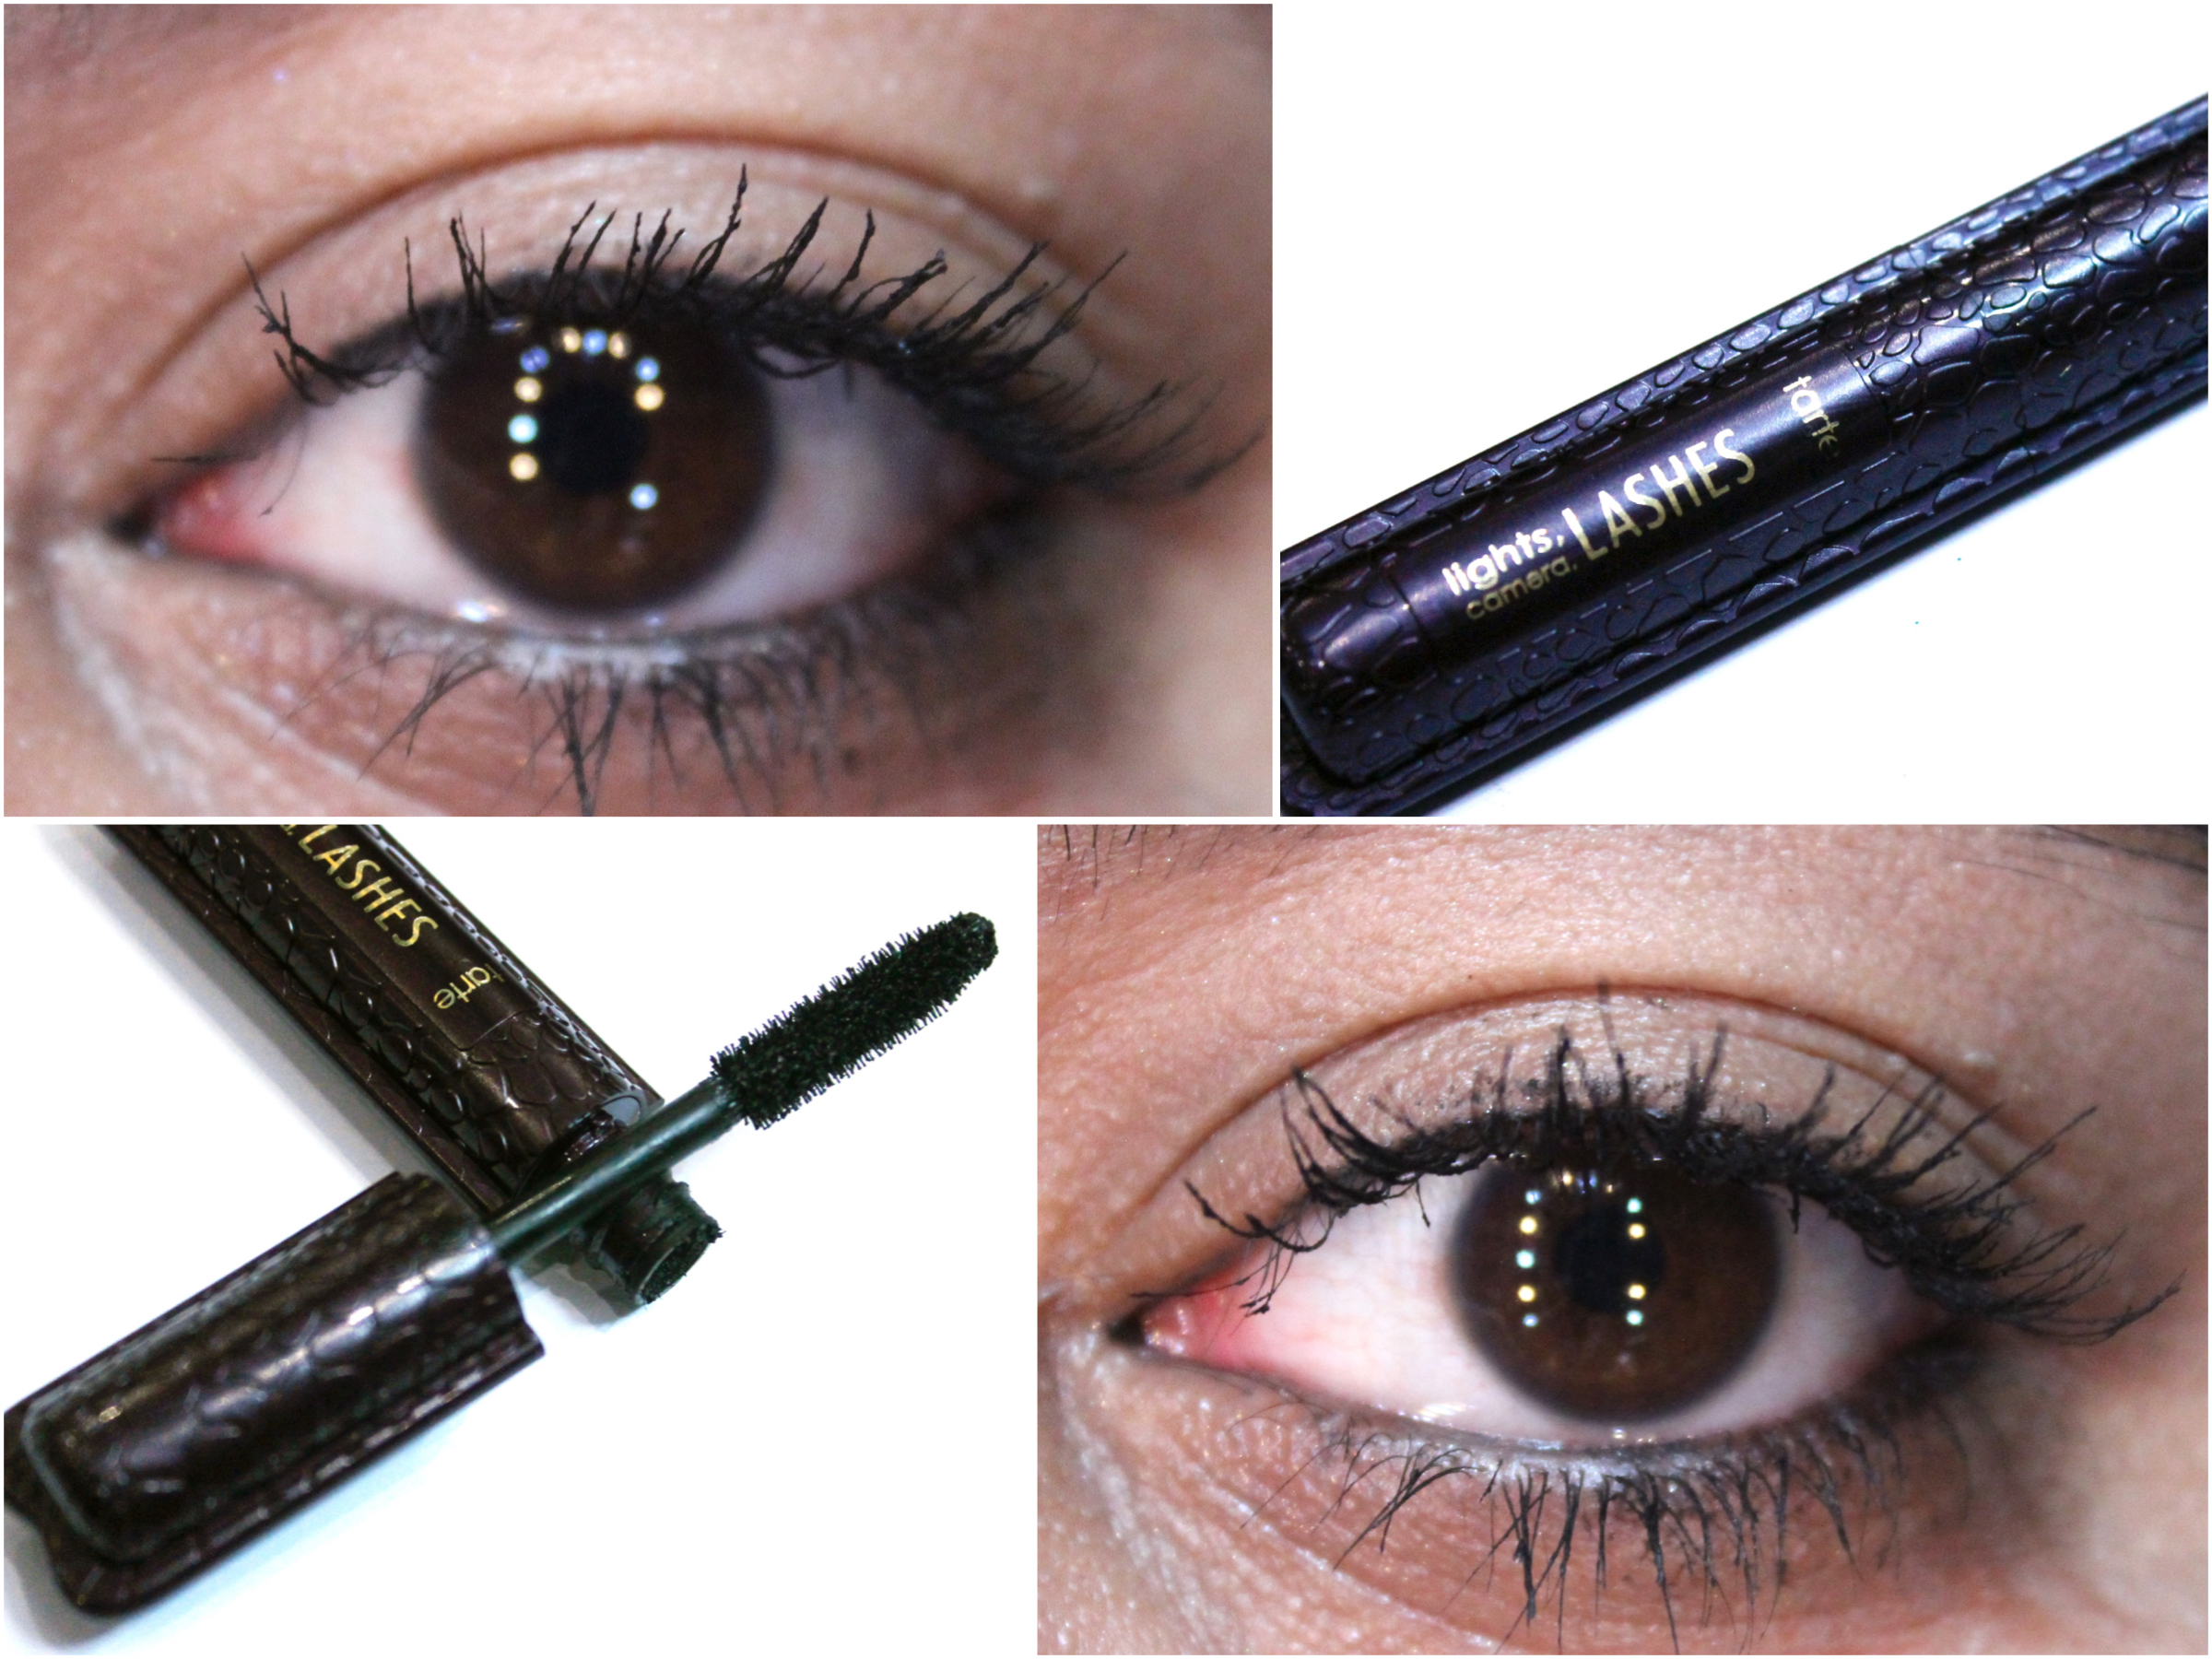 Tarte Lights, Camera, Lashes 4 In 1 Mascara Review, Swatches,